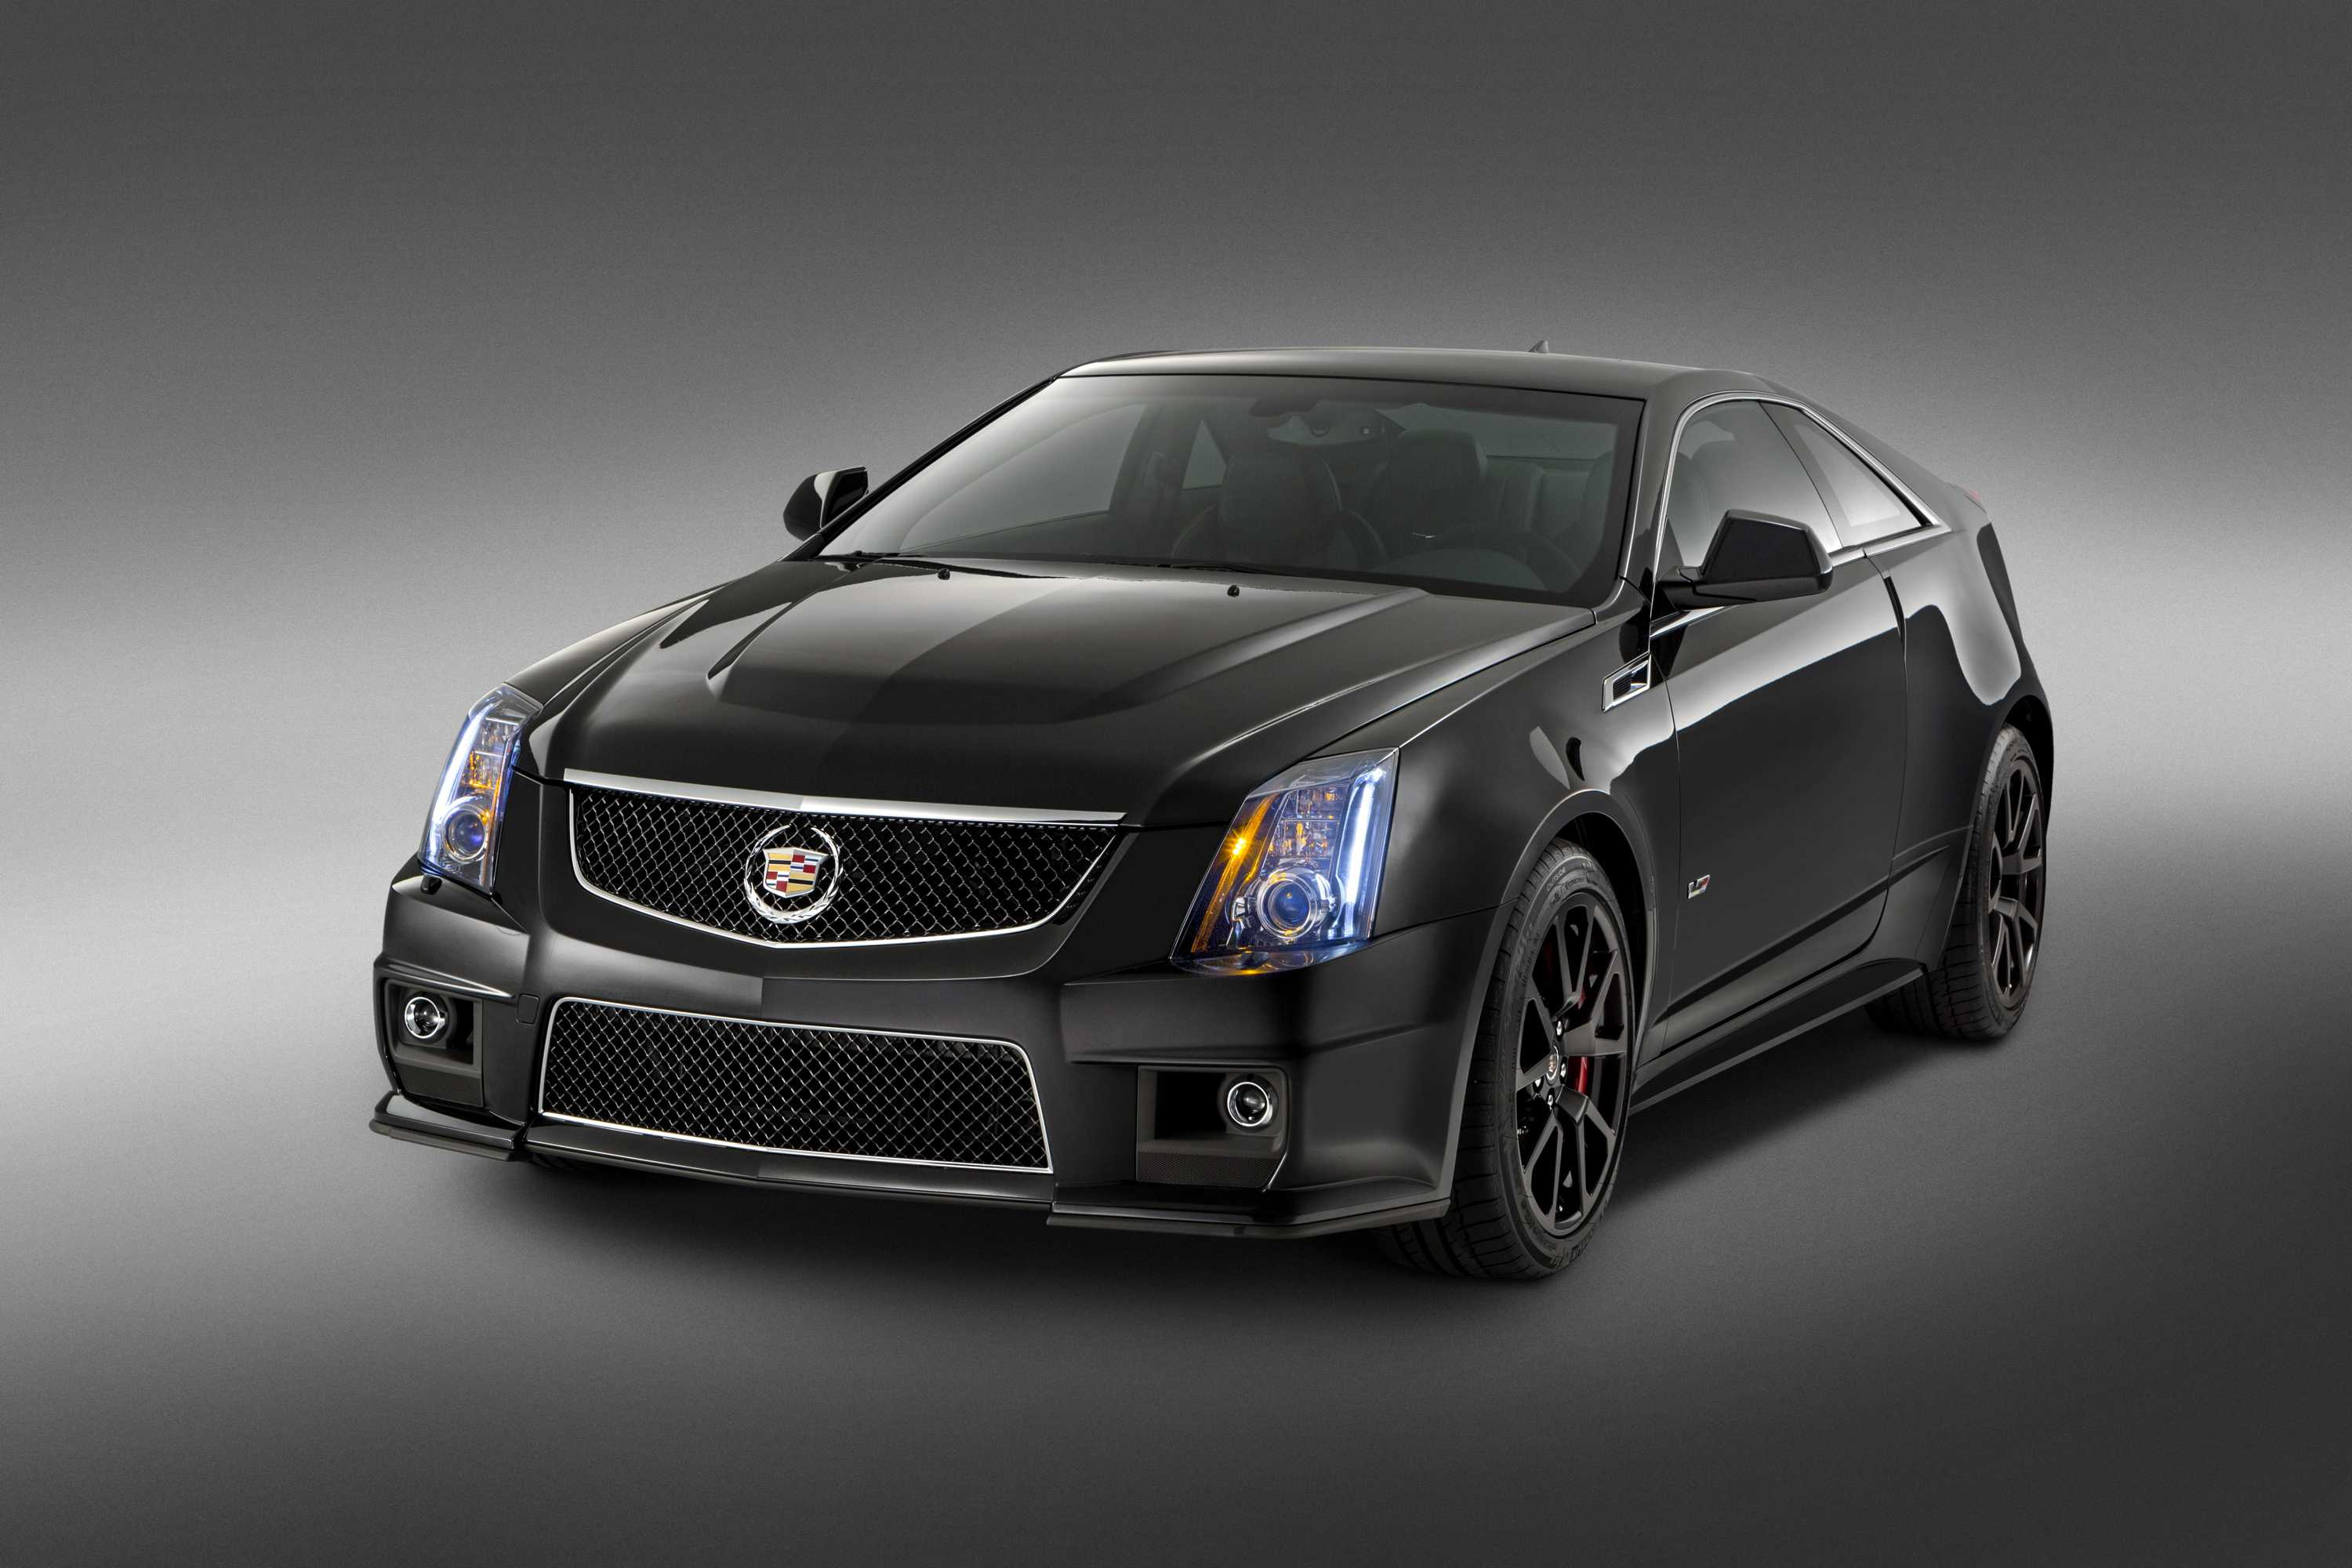 cadillac-cts-coupe-front-side-0-211658 Great Description About 2012 Cts-v for Sale with Inspiring Images Cars Review